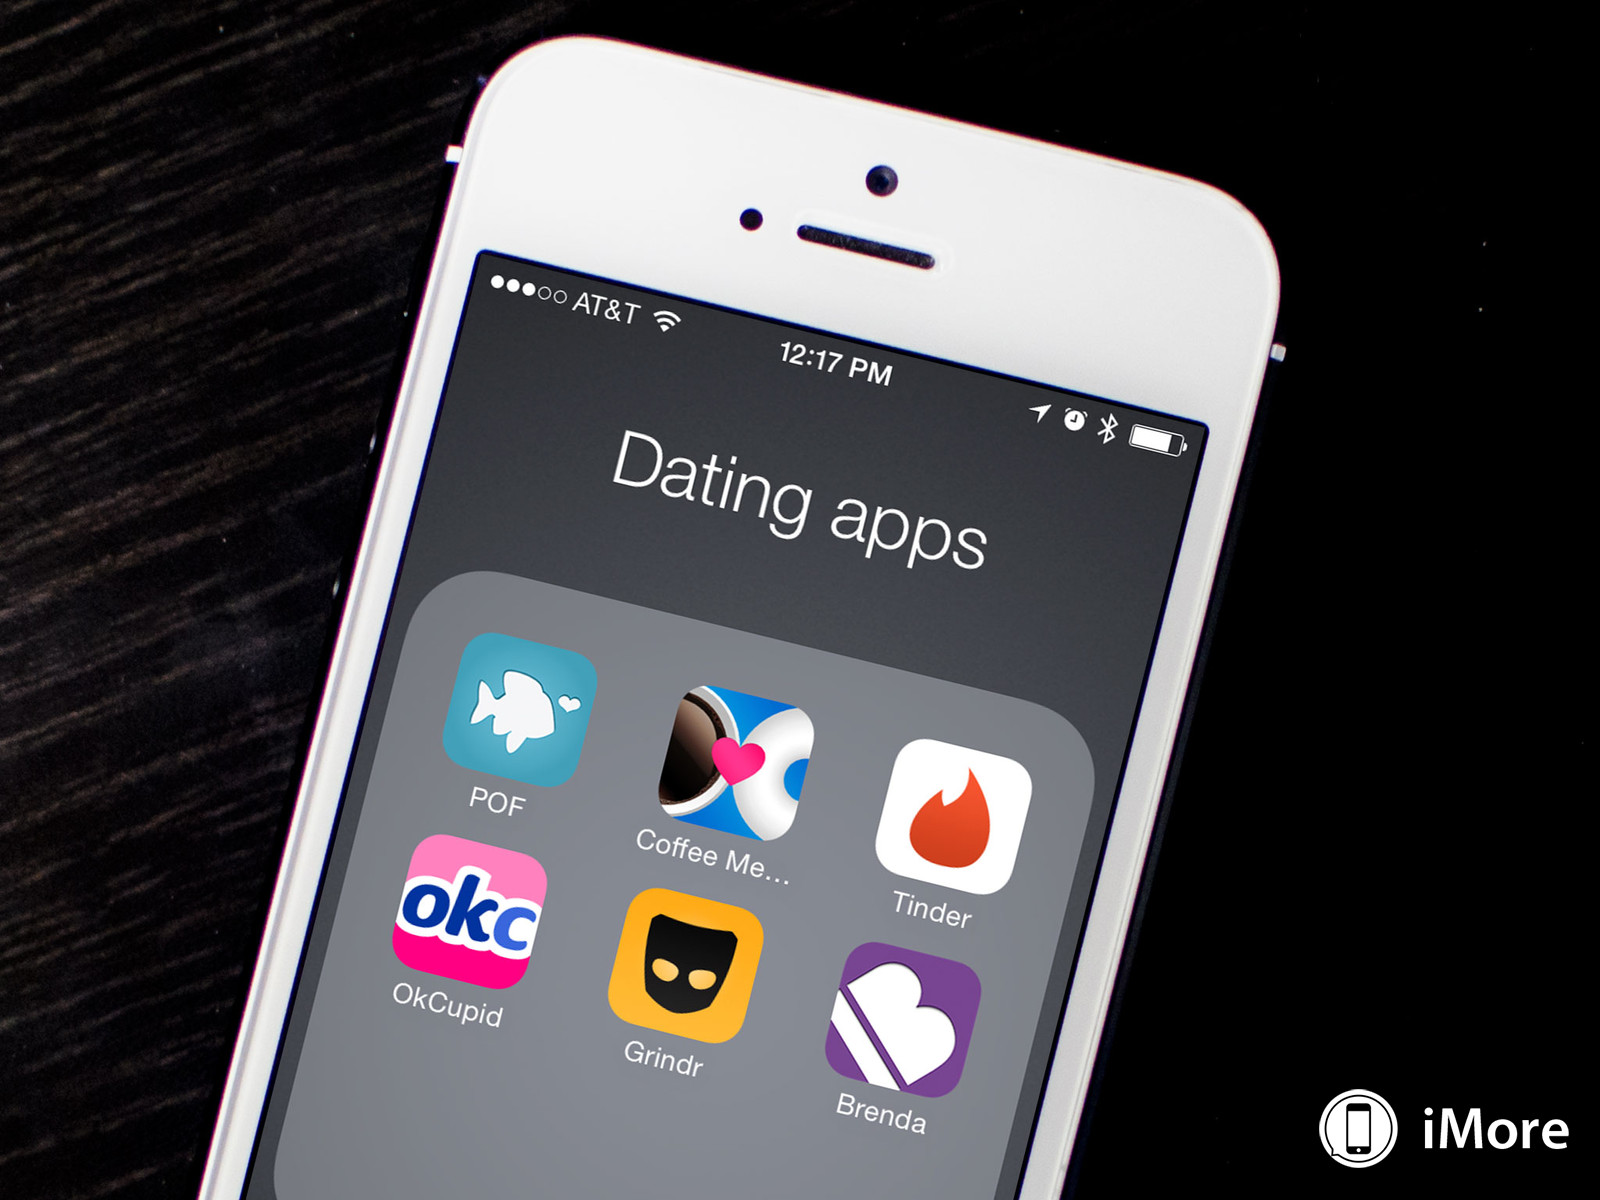 Top 5 dating apps in world